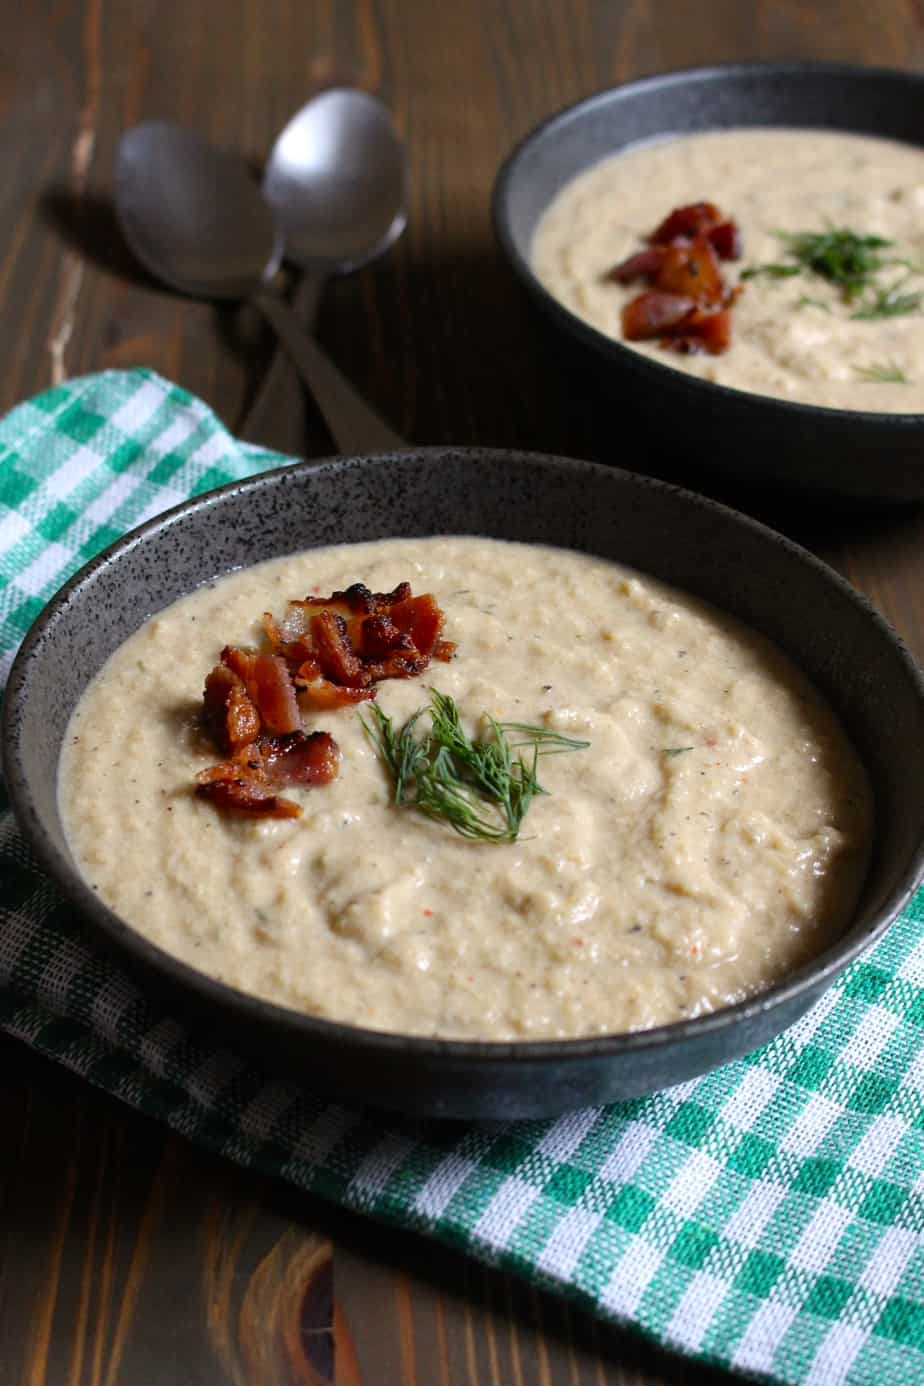 Easy Creamy Celery Soup with Coconut Milk, Bacon, and Dill | Frugal Nutrition